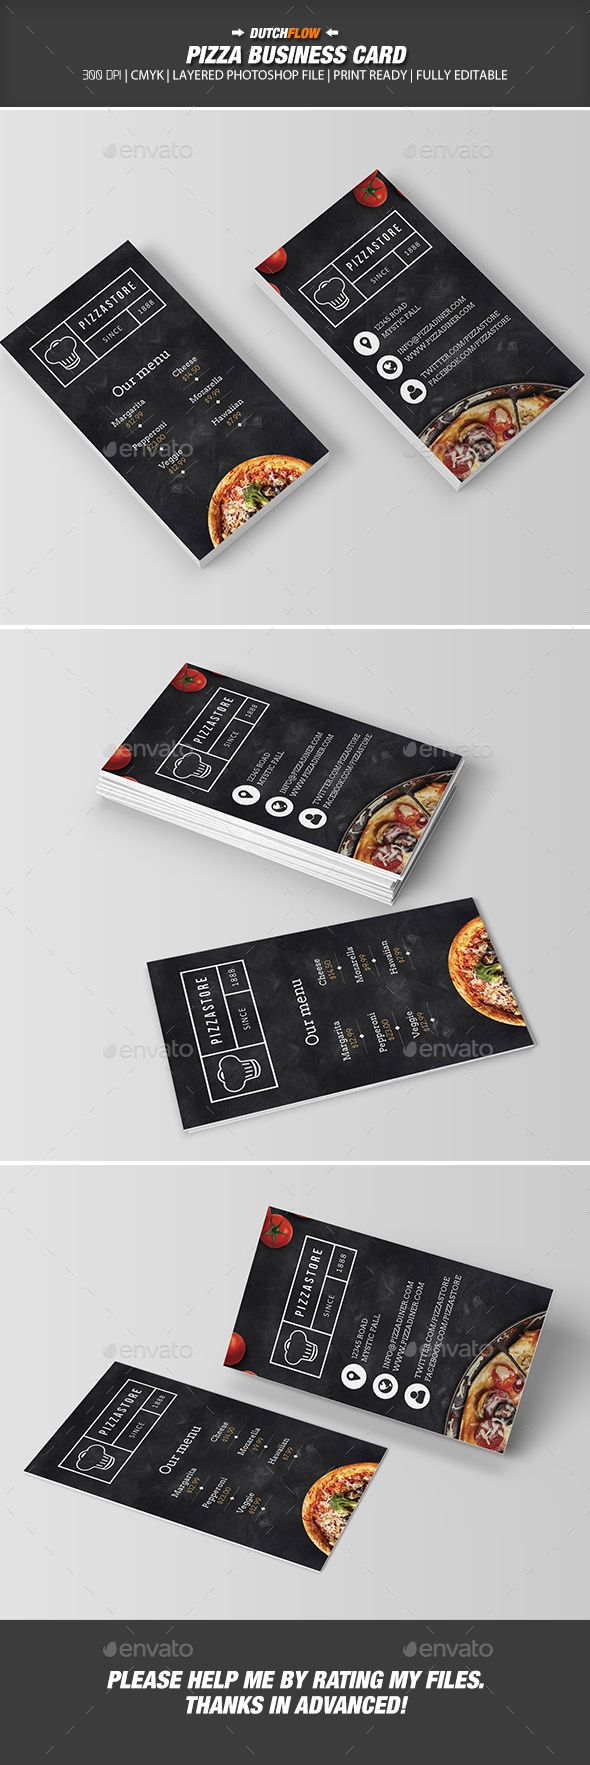 Pizza Business Card | Business cards, Business and Card templates